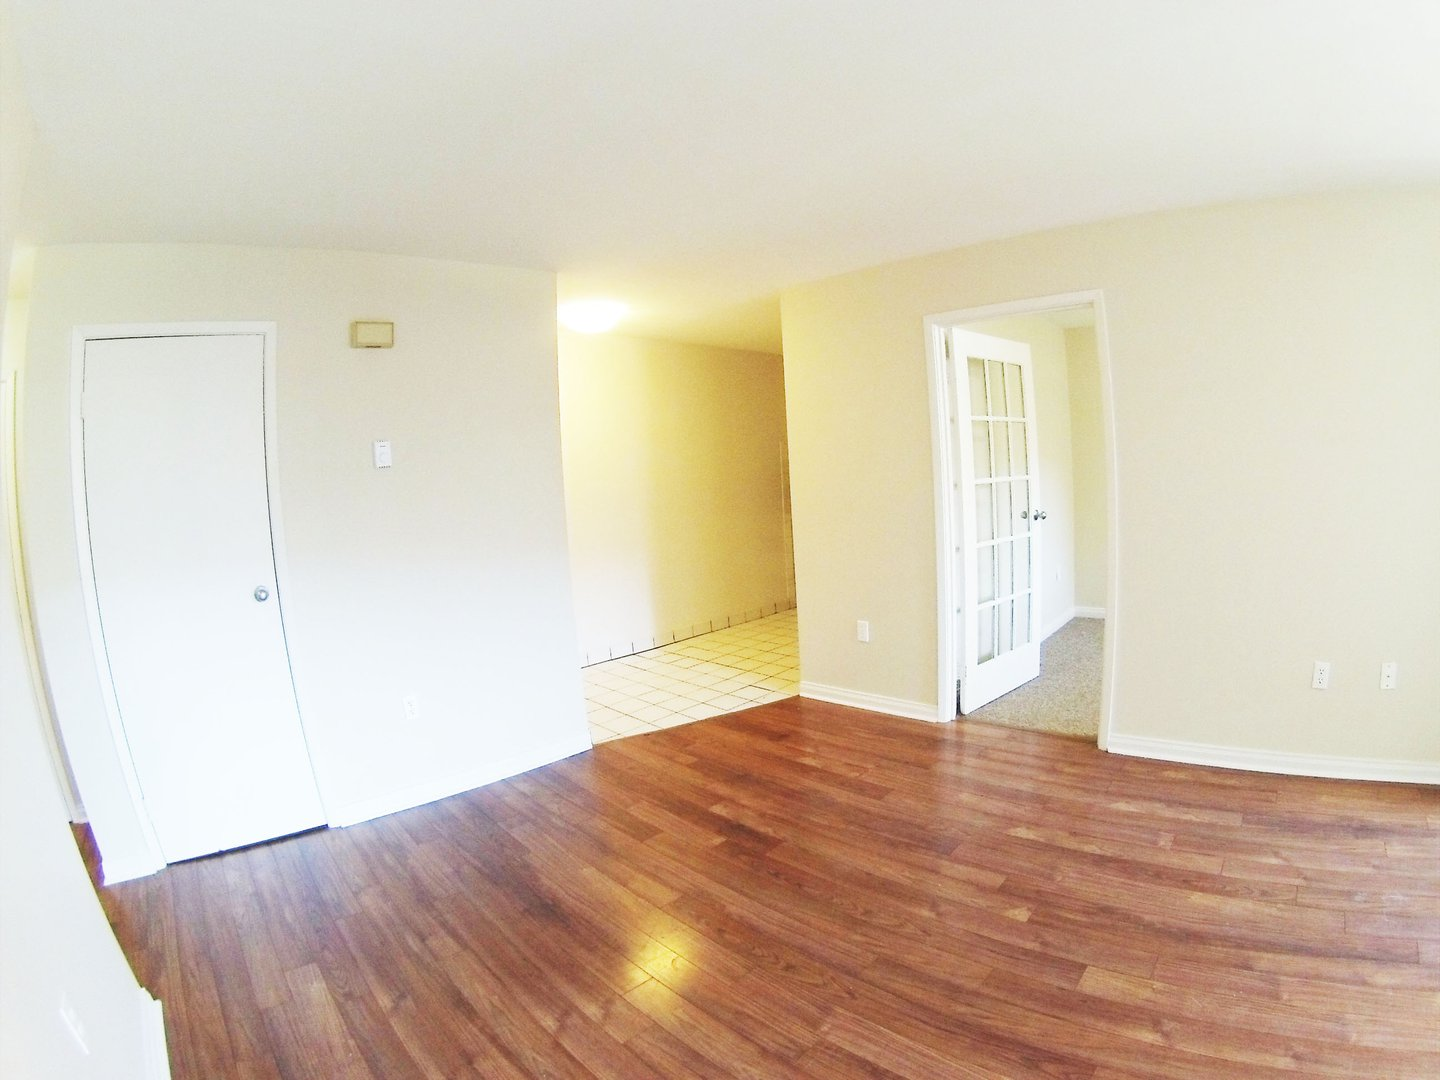 Apartment for rent at 96 Highfield Park Drive B, Dartmouth, NS. This is the empty room with hardwood floor.